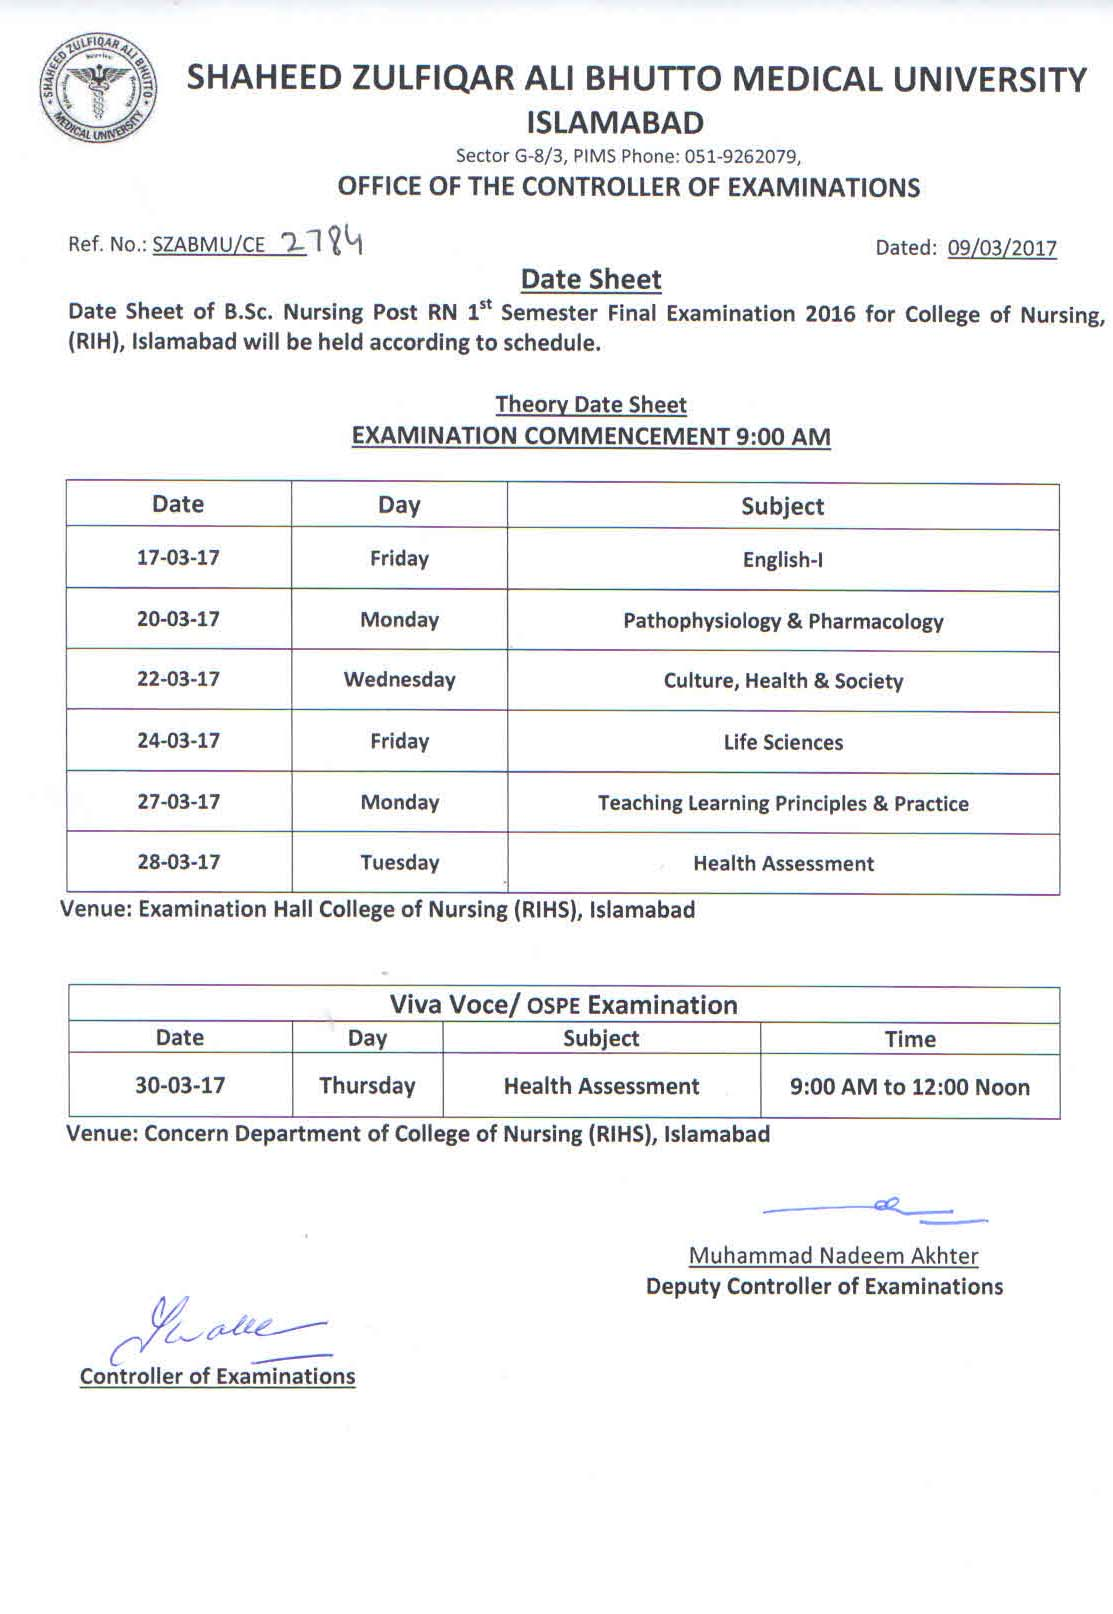 Date Sheet - B.Sc. Nursing Post RN 1st Semester Final Exams 2016